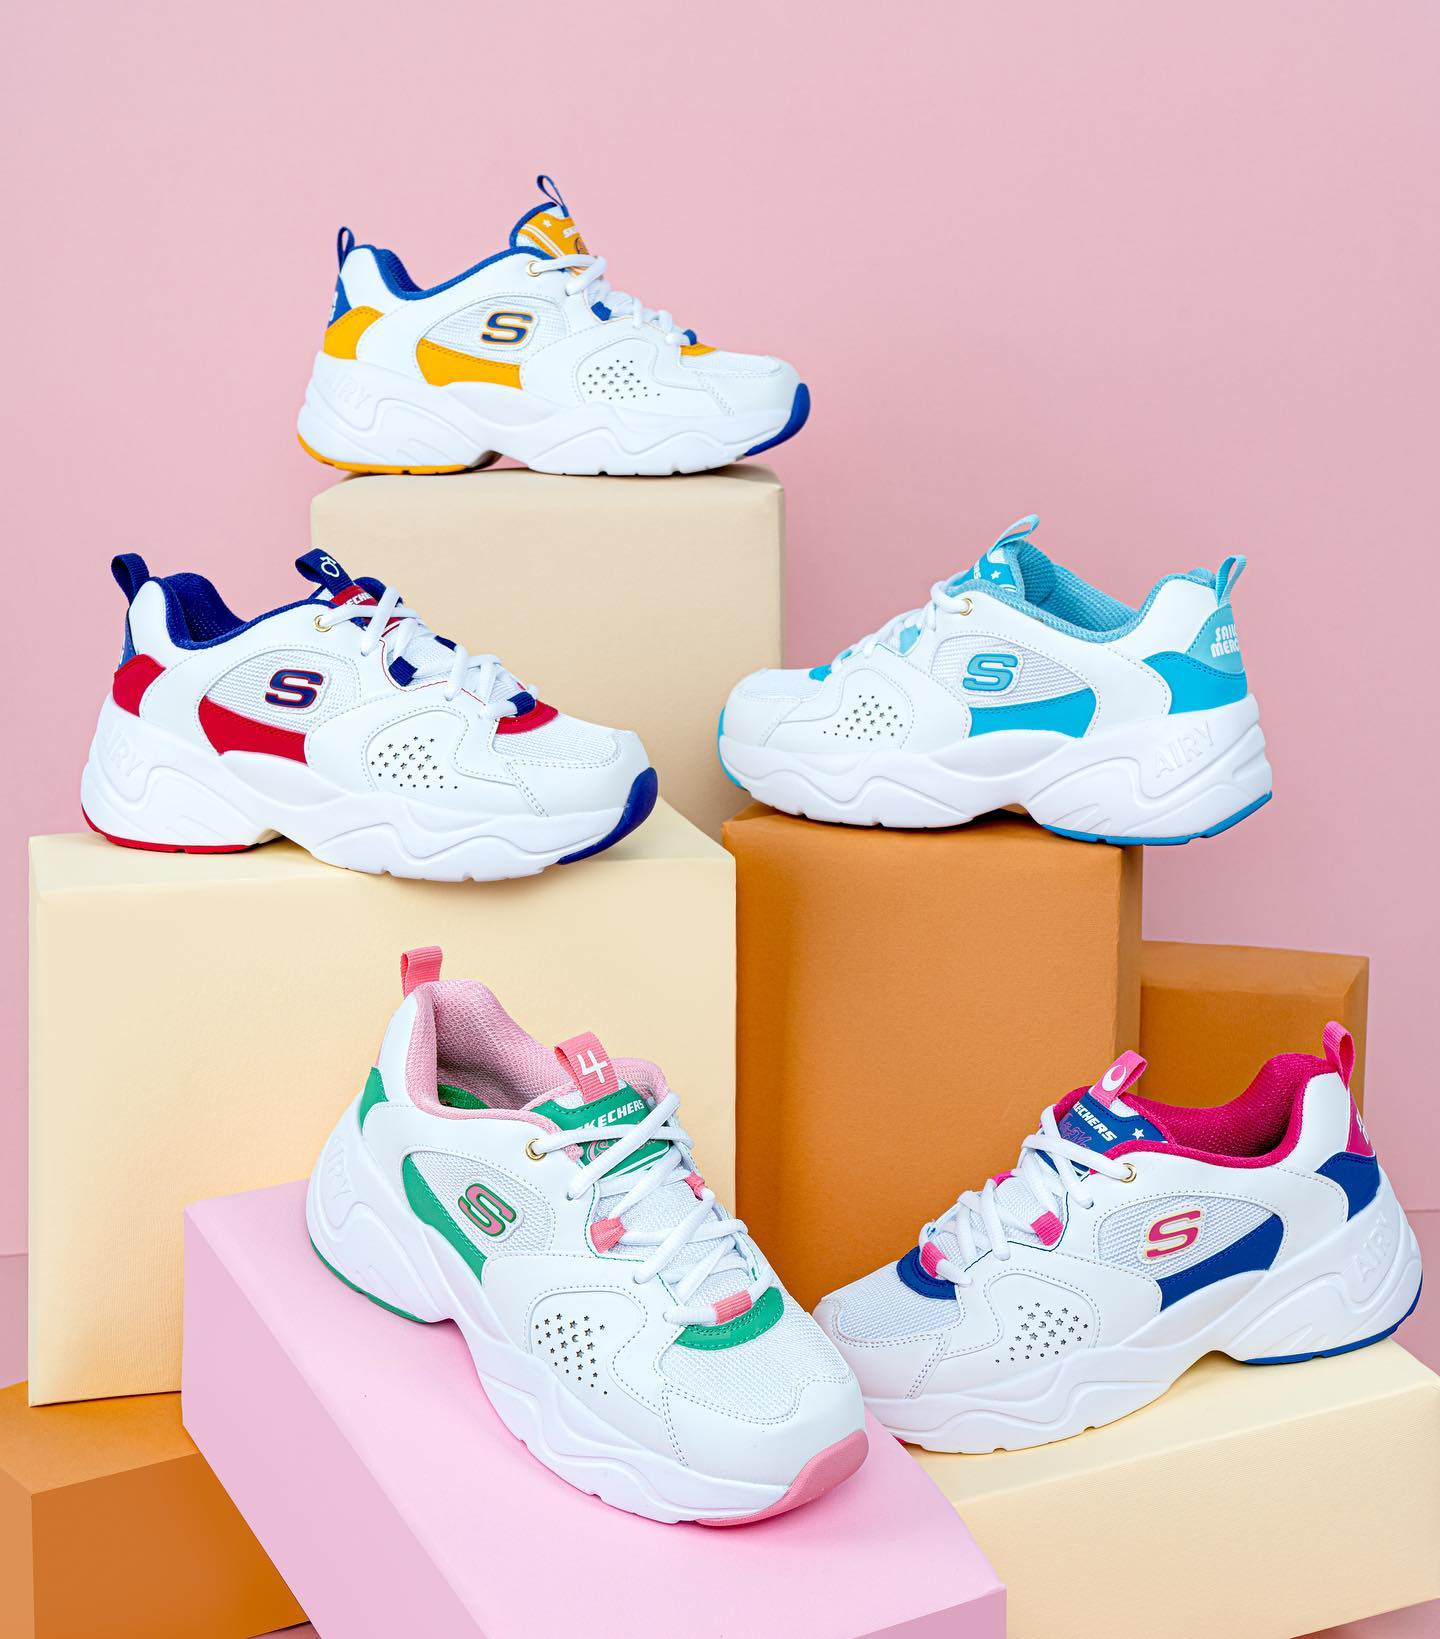 Skechers x Sailor Moon D'Lites Airy 2.0